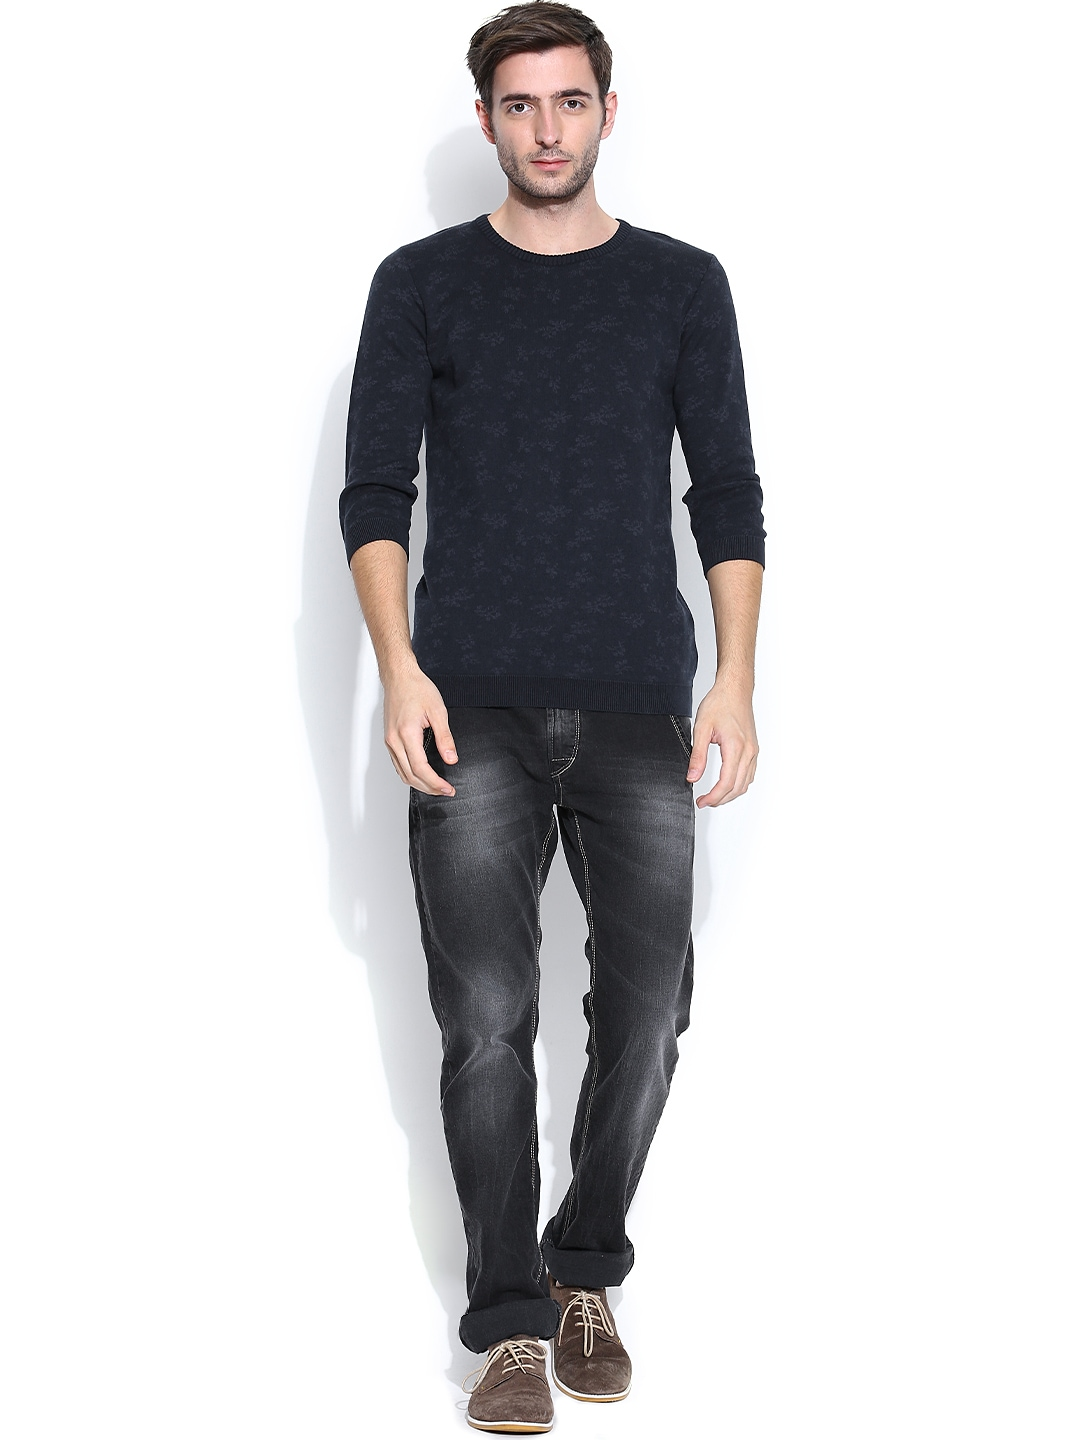 by United Colors of Benetton More Navy Blue Sweaters More Sweaters